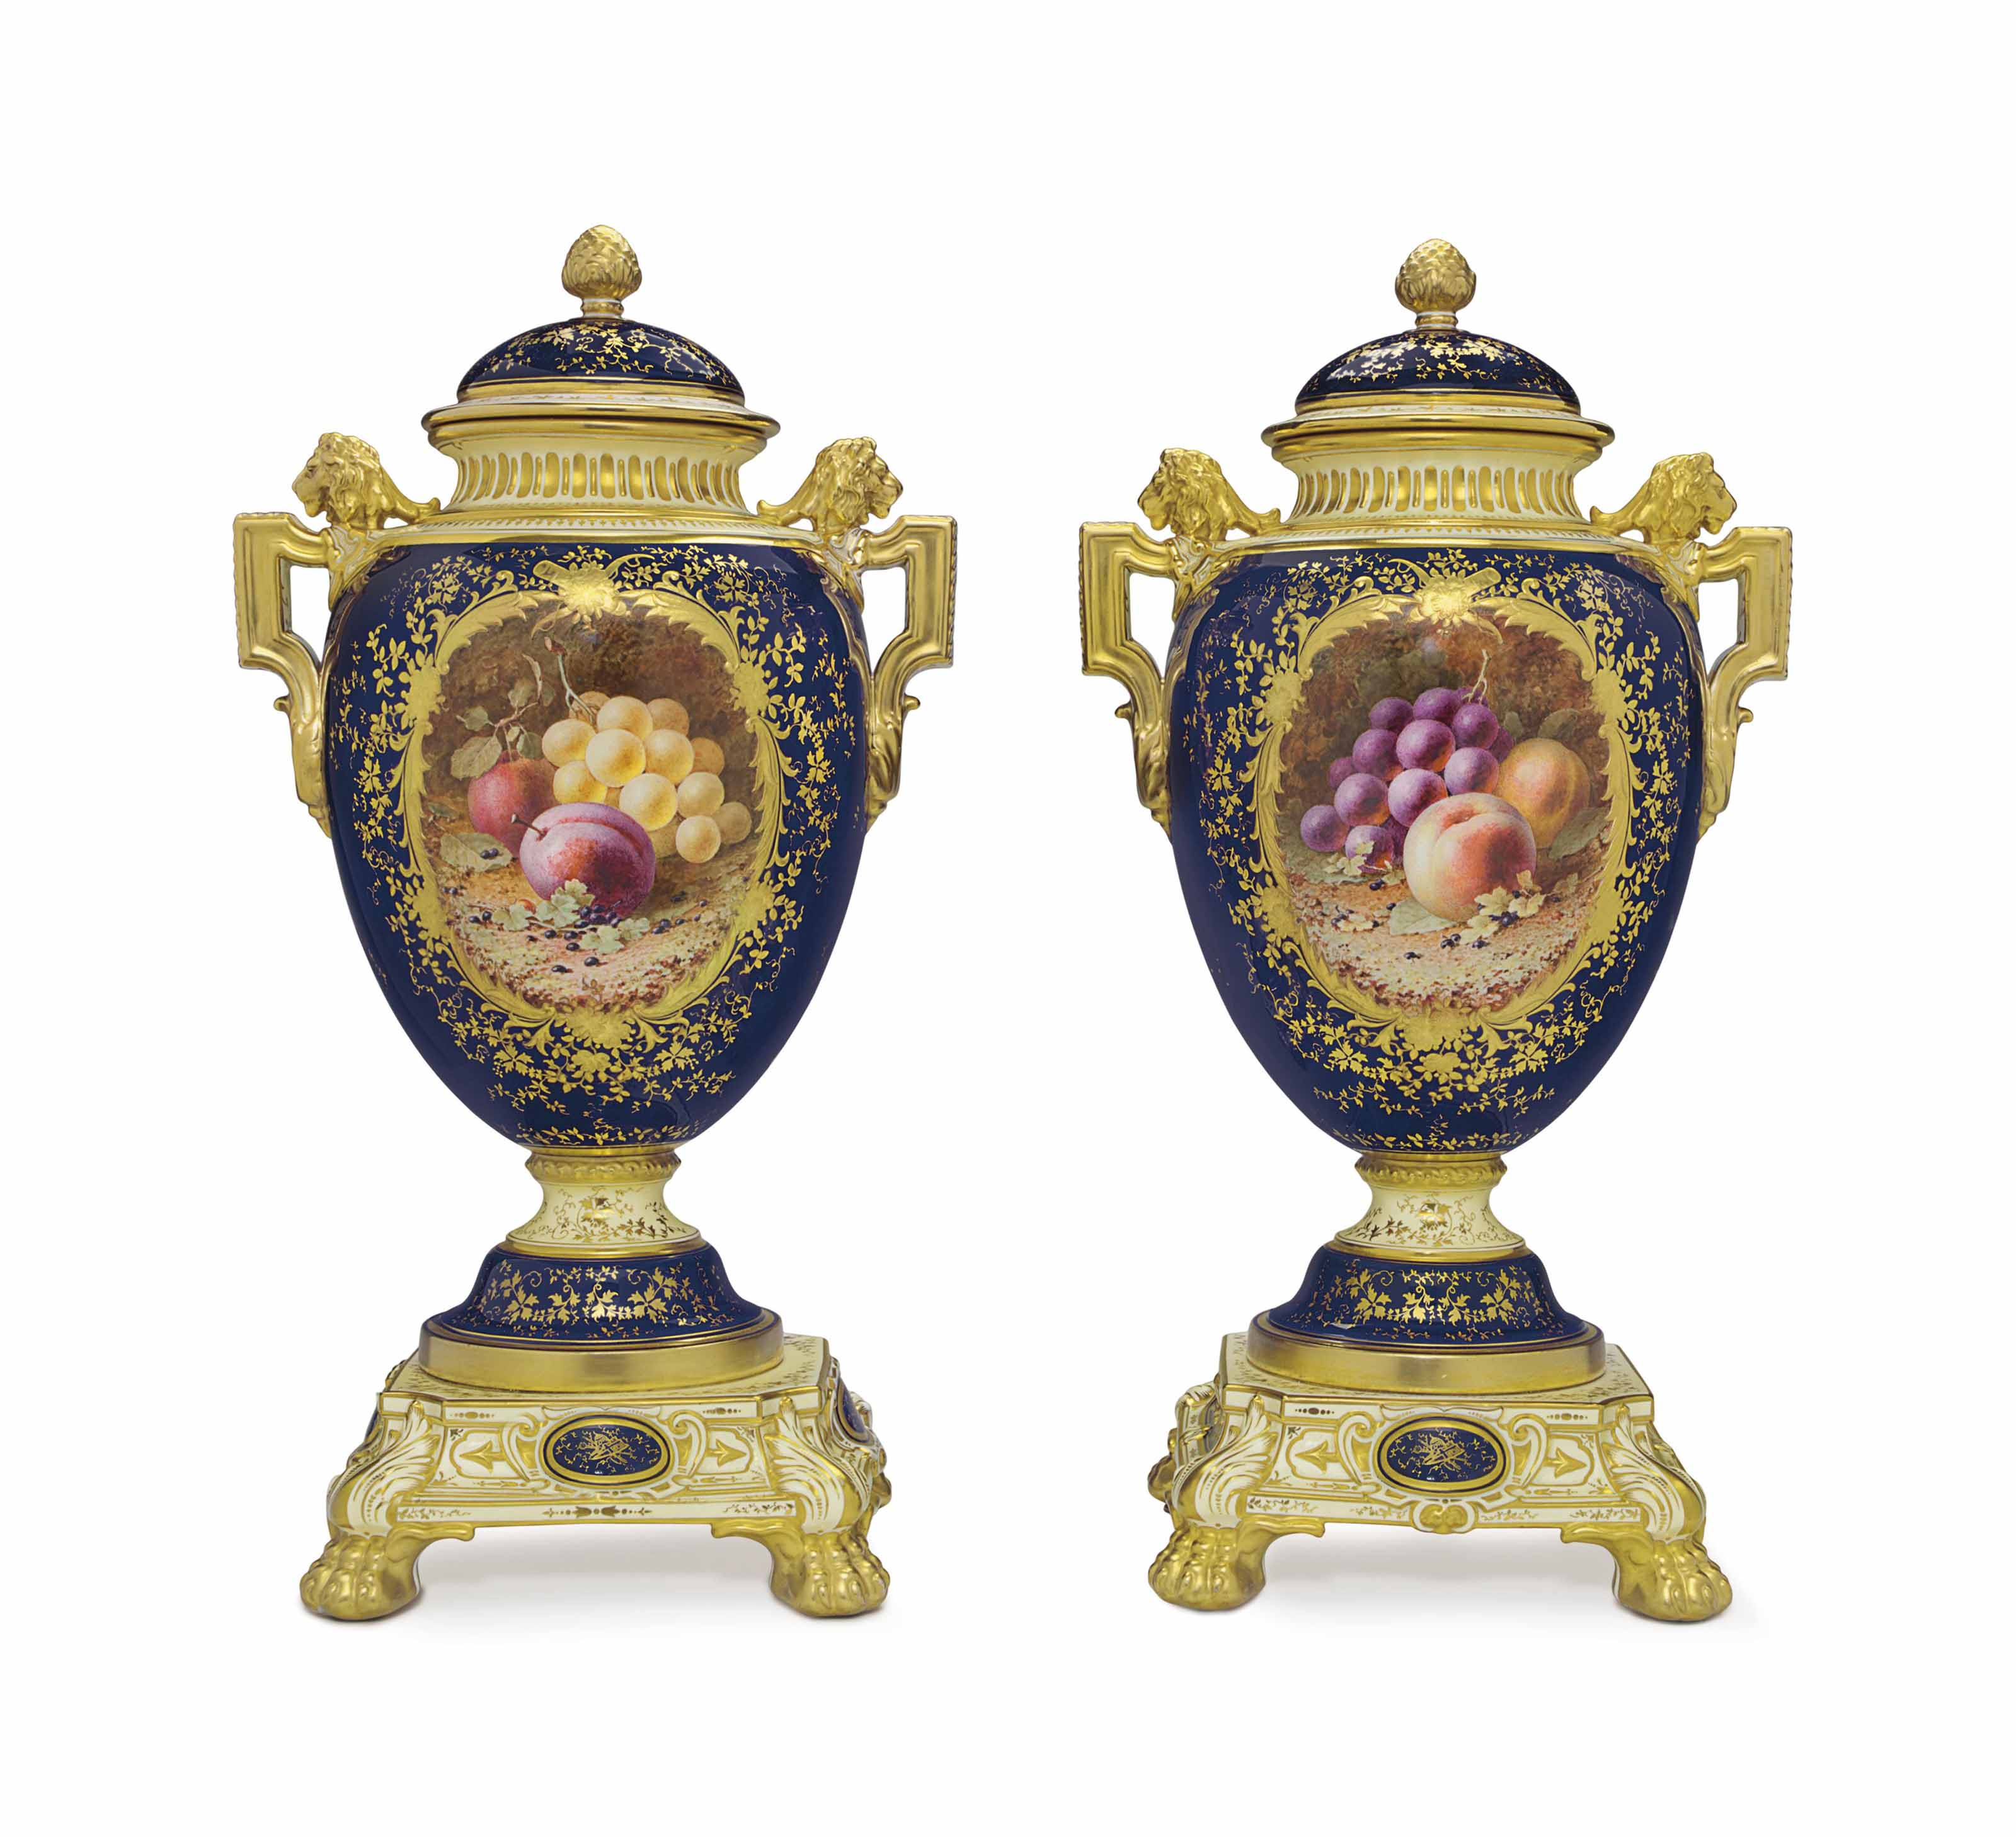 A PAIR OF COALPORT PORCELAIN PALE-YELLOW AND COBALT-BLUE GROUND VASES AND COVERS, ON FIXED STANDS